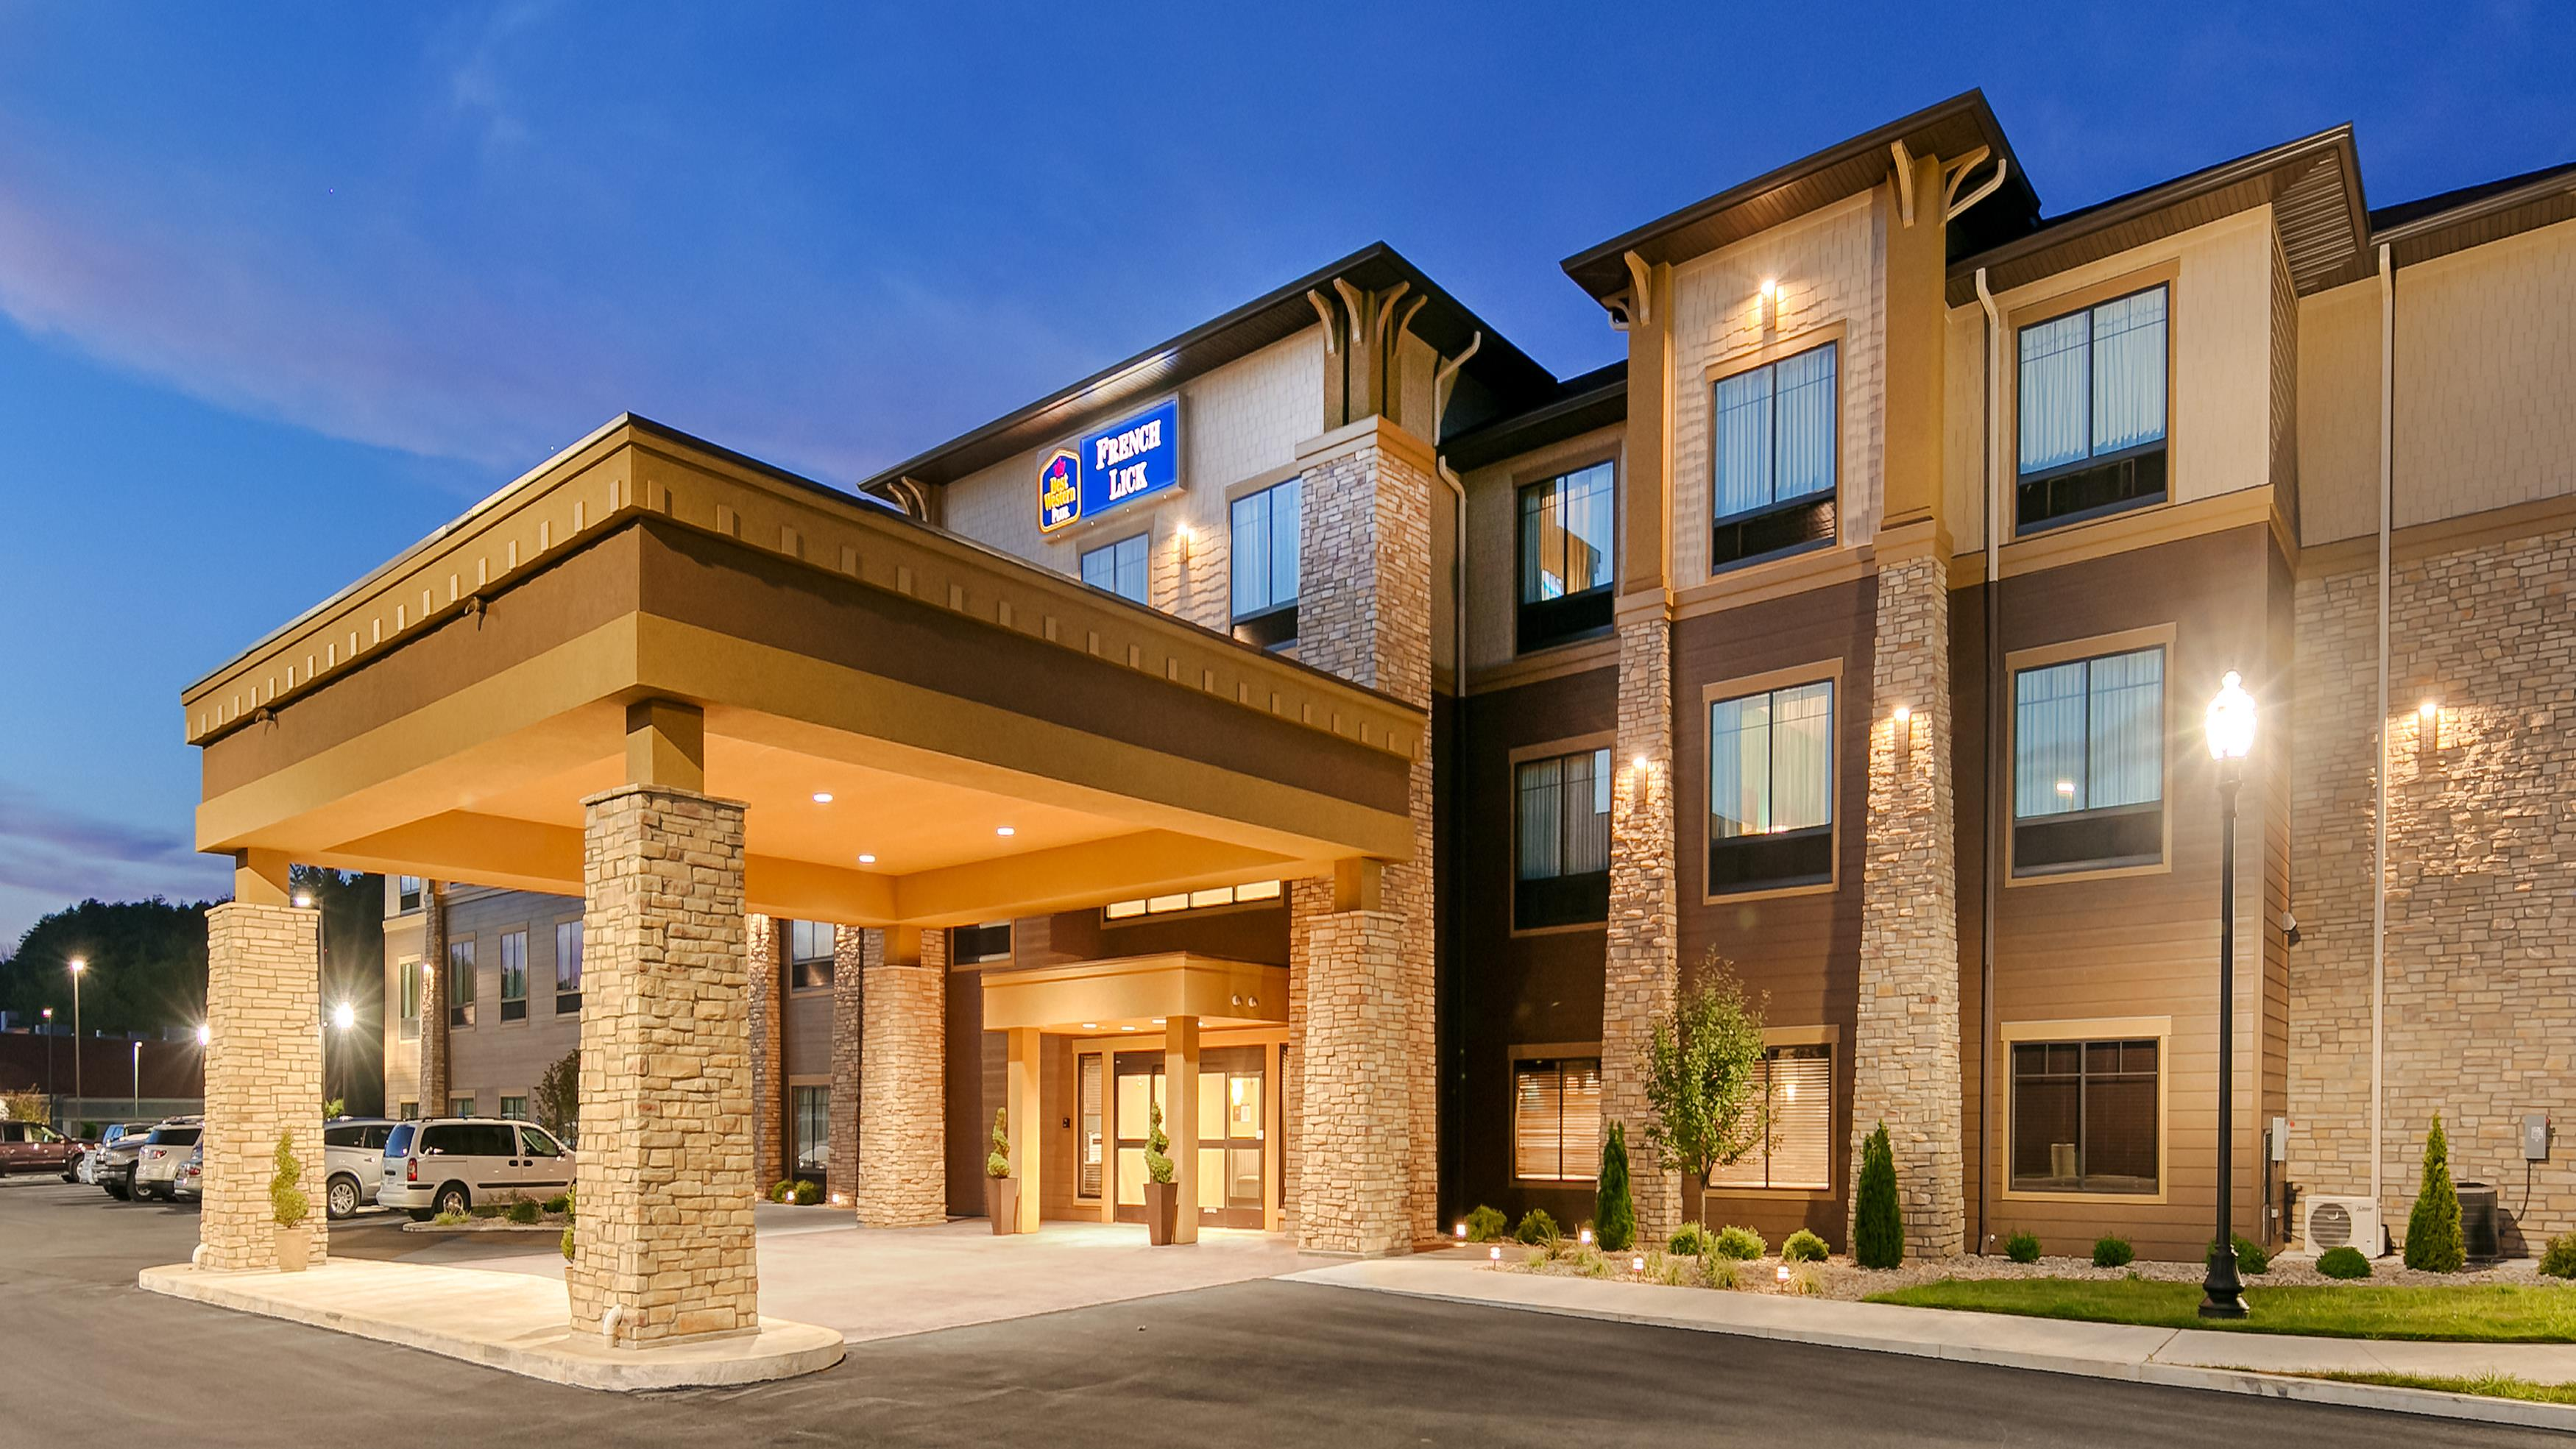 Best Western Plus French Lick image 0